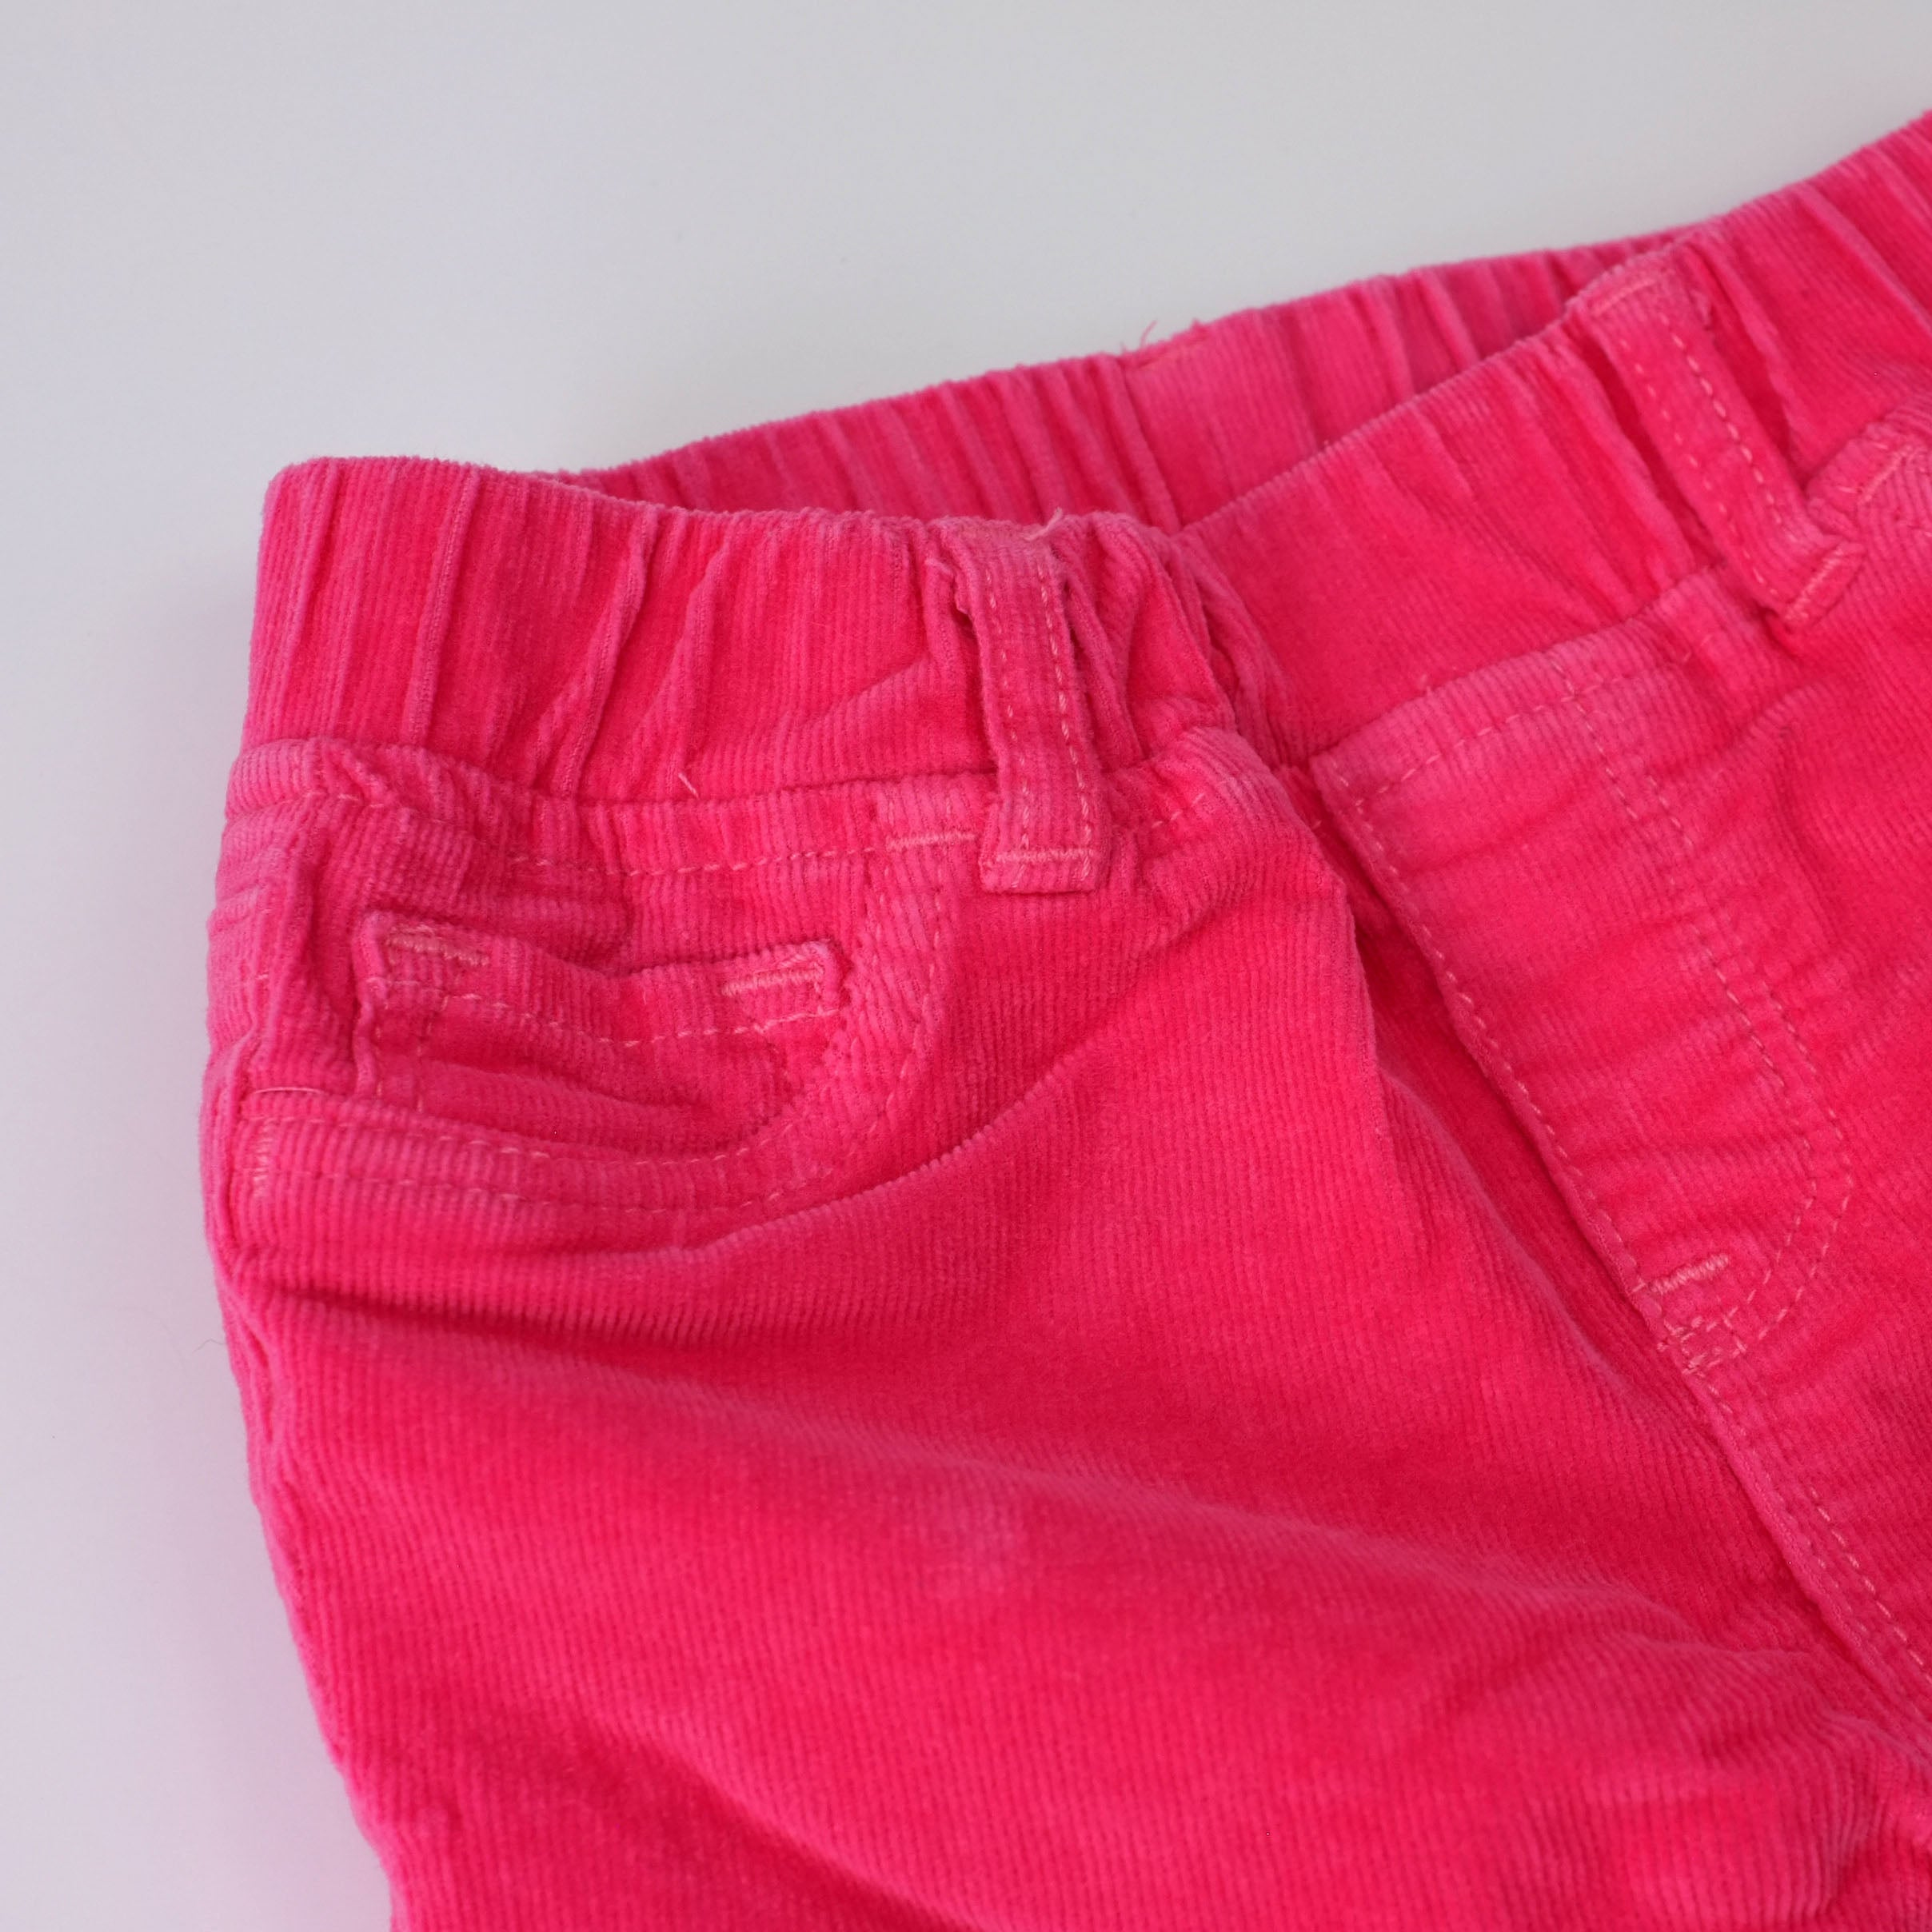 4t Pink Cord Jeggings - Wild Child